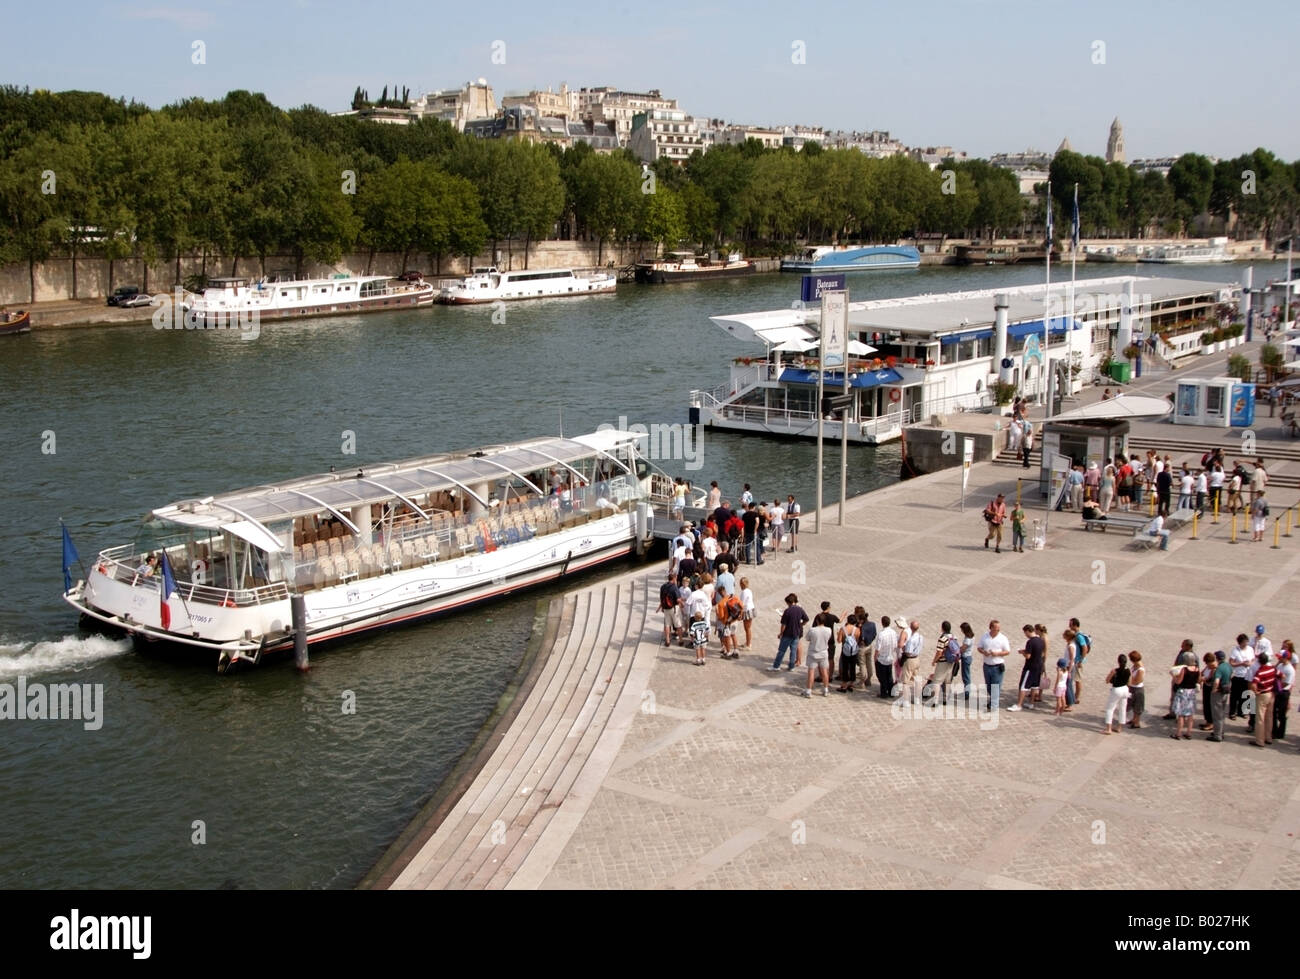 the queue for the bateaux mouches on the river seine in paris france stock photo royalty free. Black Bedroom Furniture Sets. Home Design Ideas